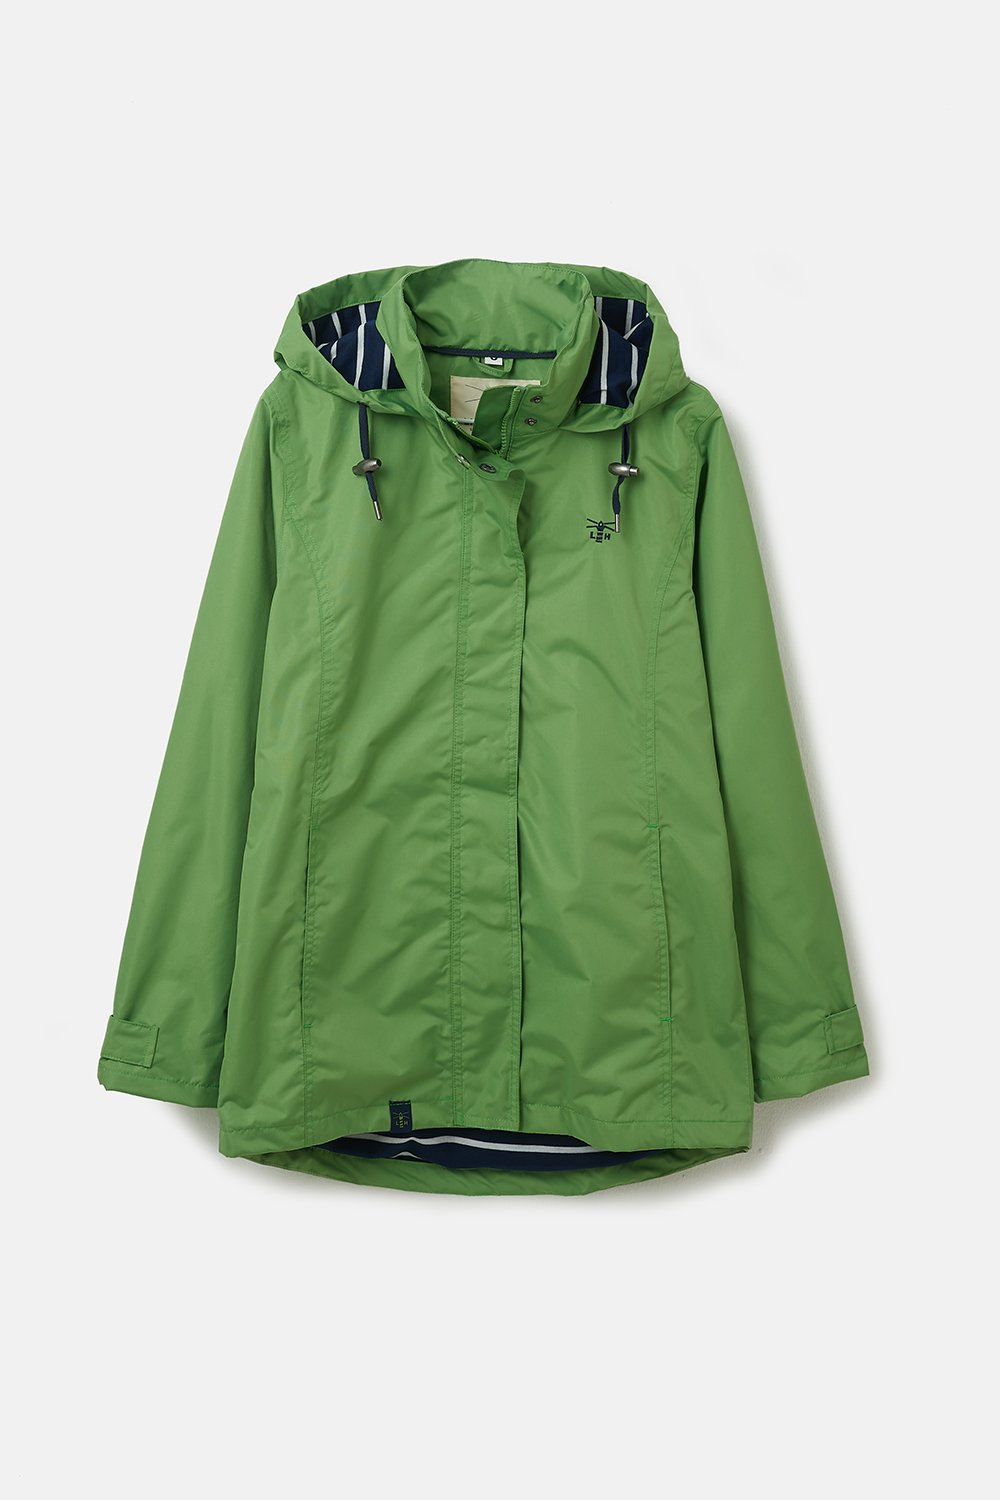 Lighthouse Beachcomber Jacket - Meadow Green